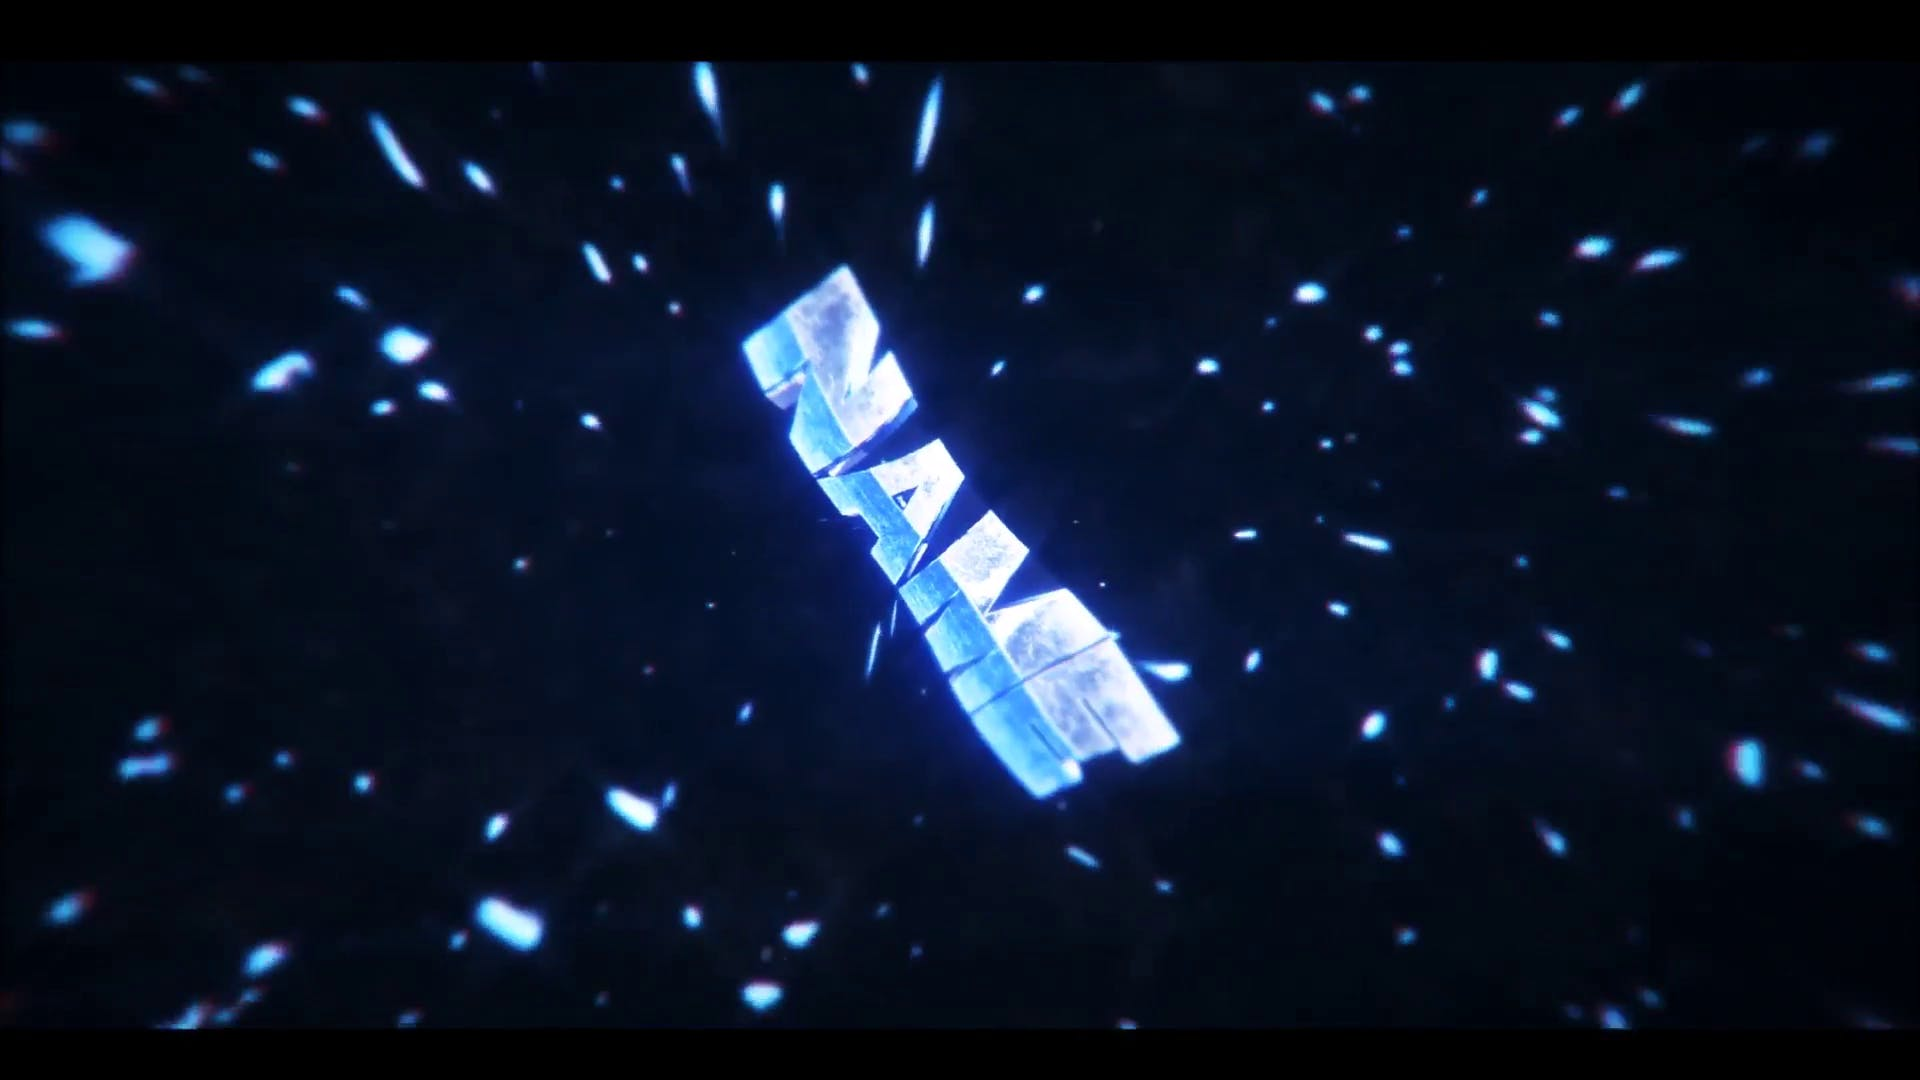 Sweet Icy Cinema 4D After Effects Intro Template FREE DOWNLOAD